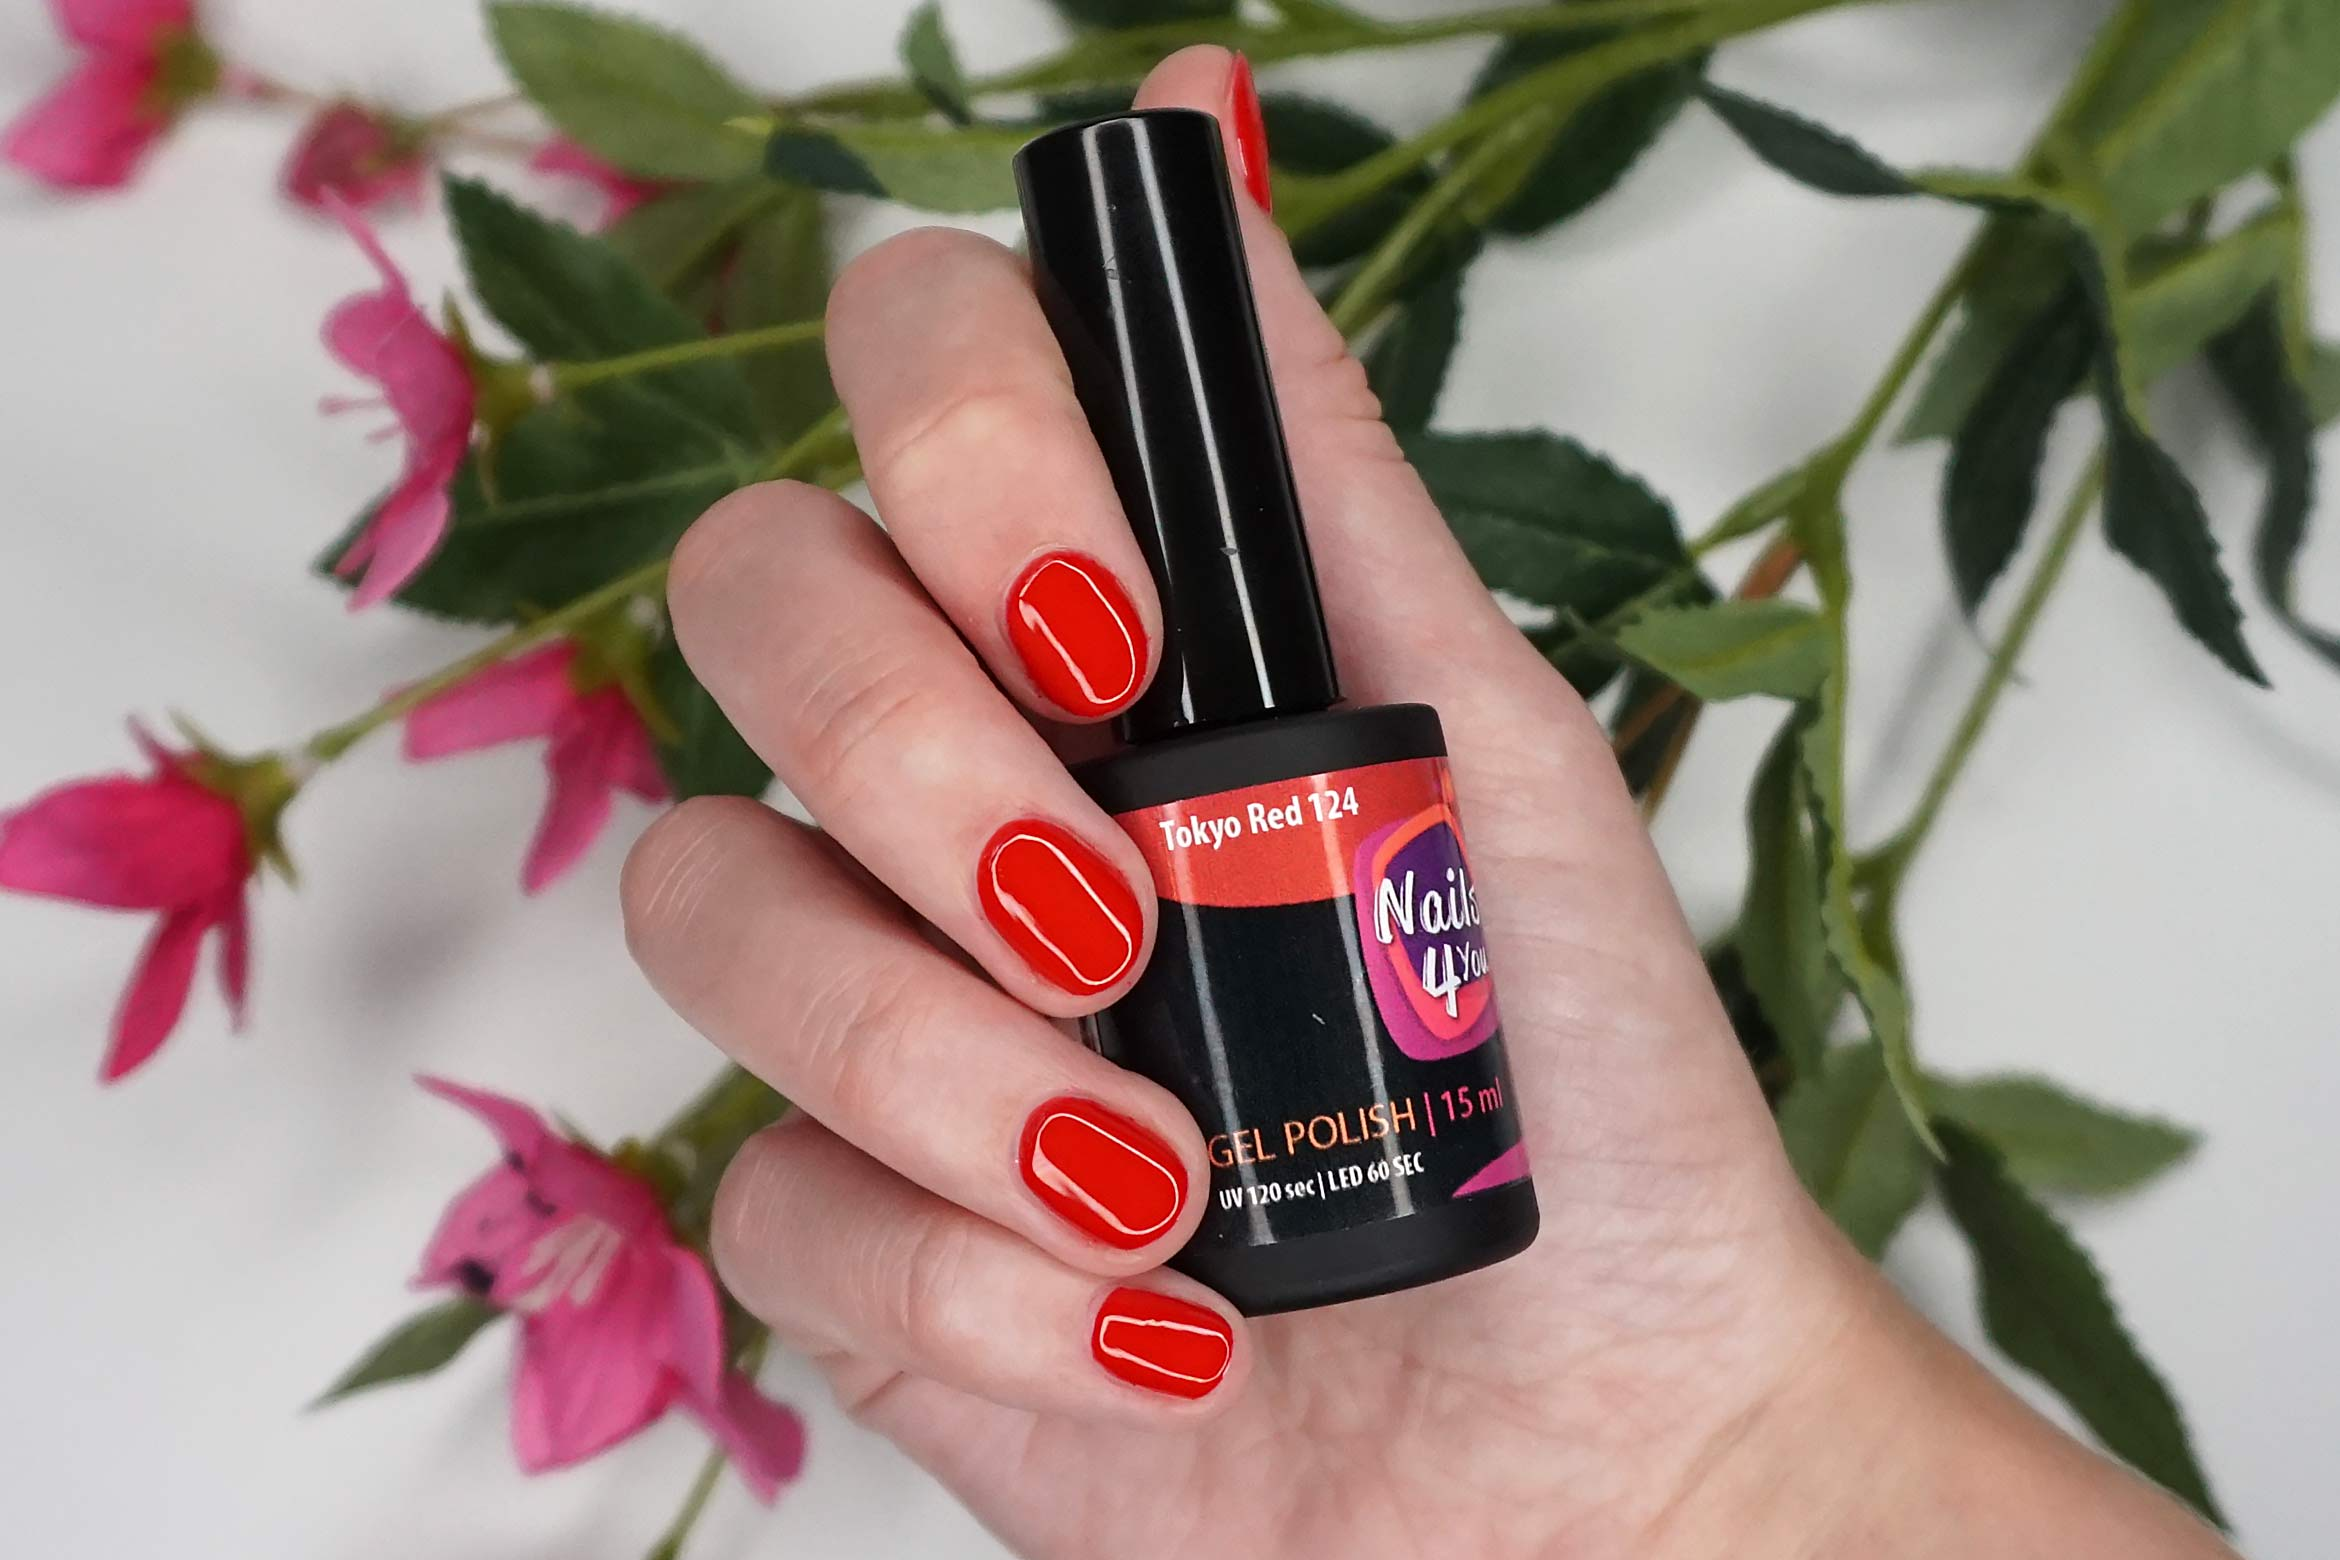 nails4you-tokyo-red-124-swatch